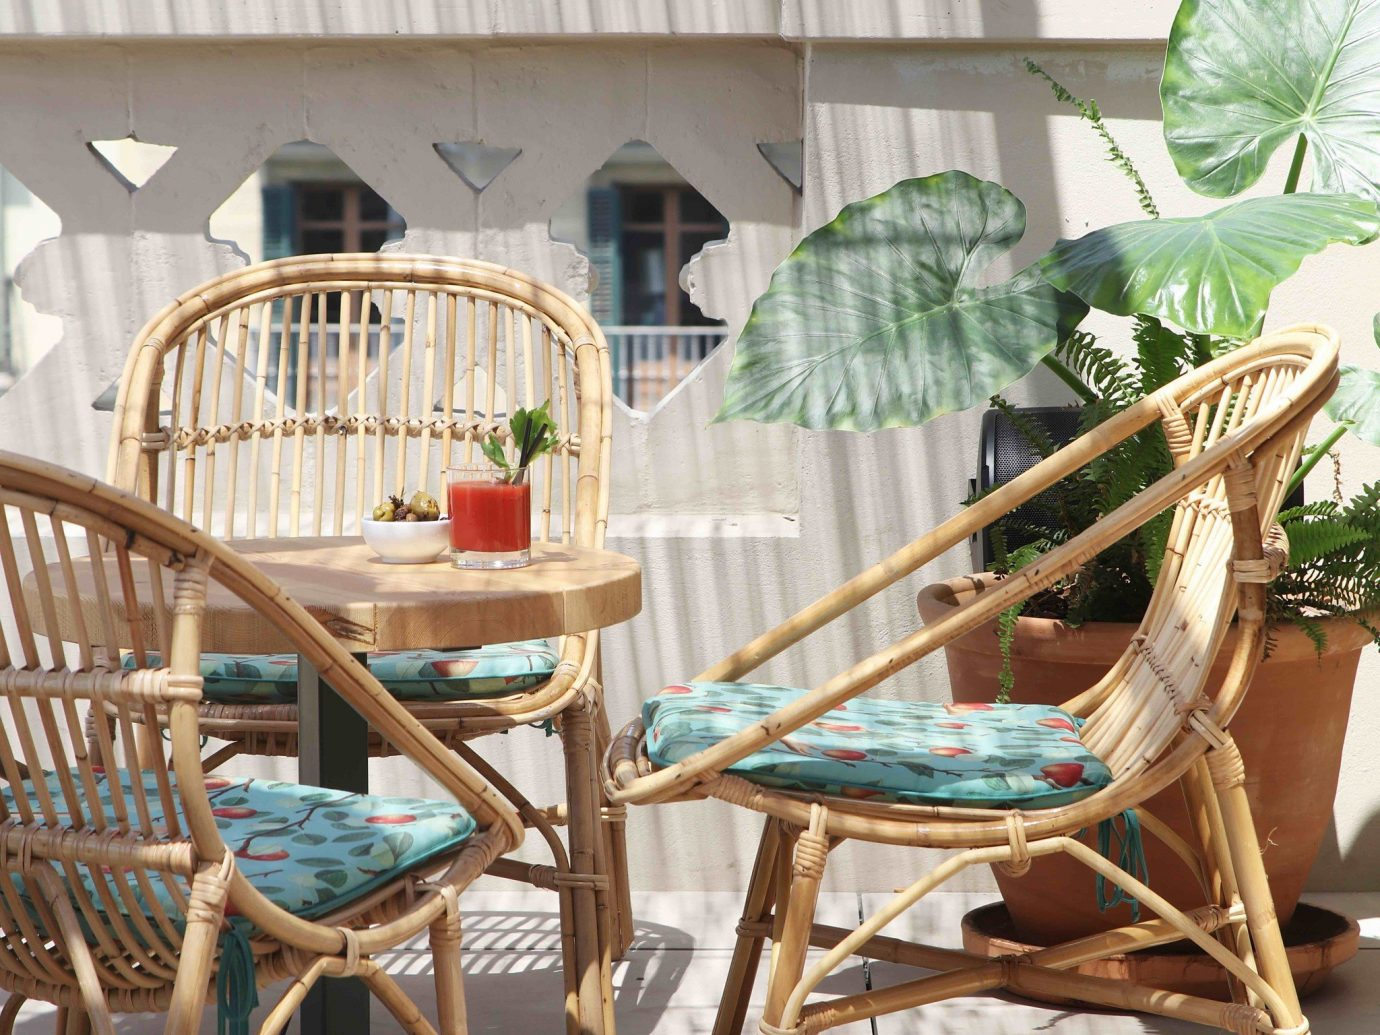 Barcelona Hotels Spain chair furniture wooden wood table home outdoor structure